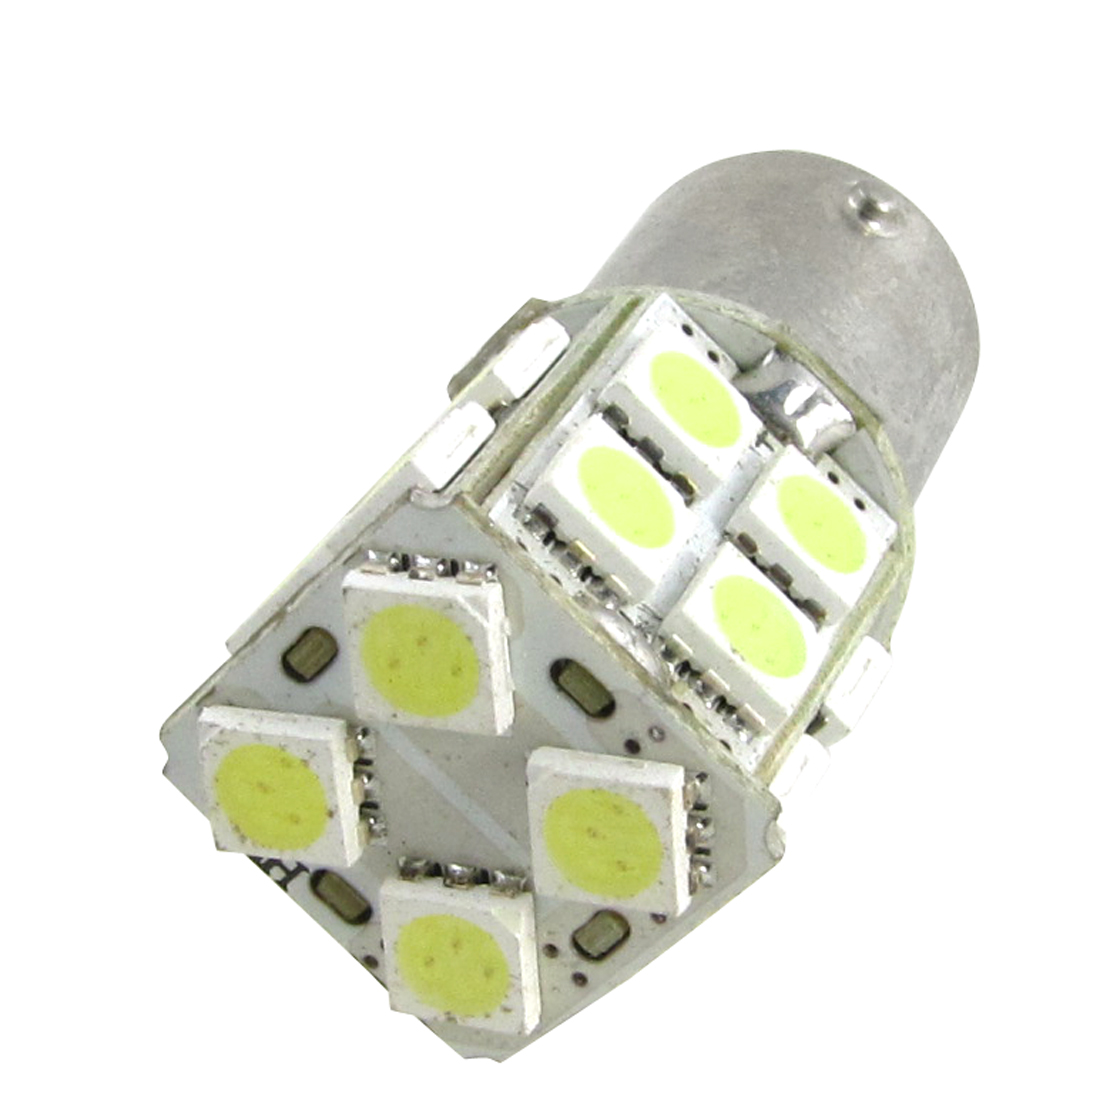 White 1157 7528 BAY15D 20 LED 5050 SMD Car Tail Packing Brake Light Bulb